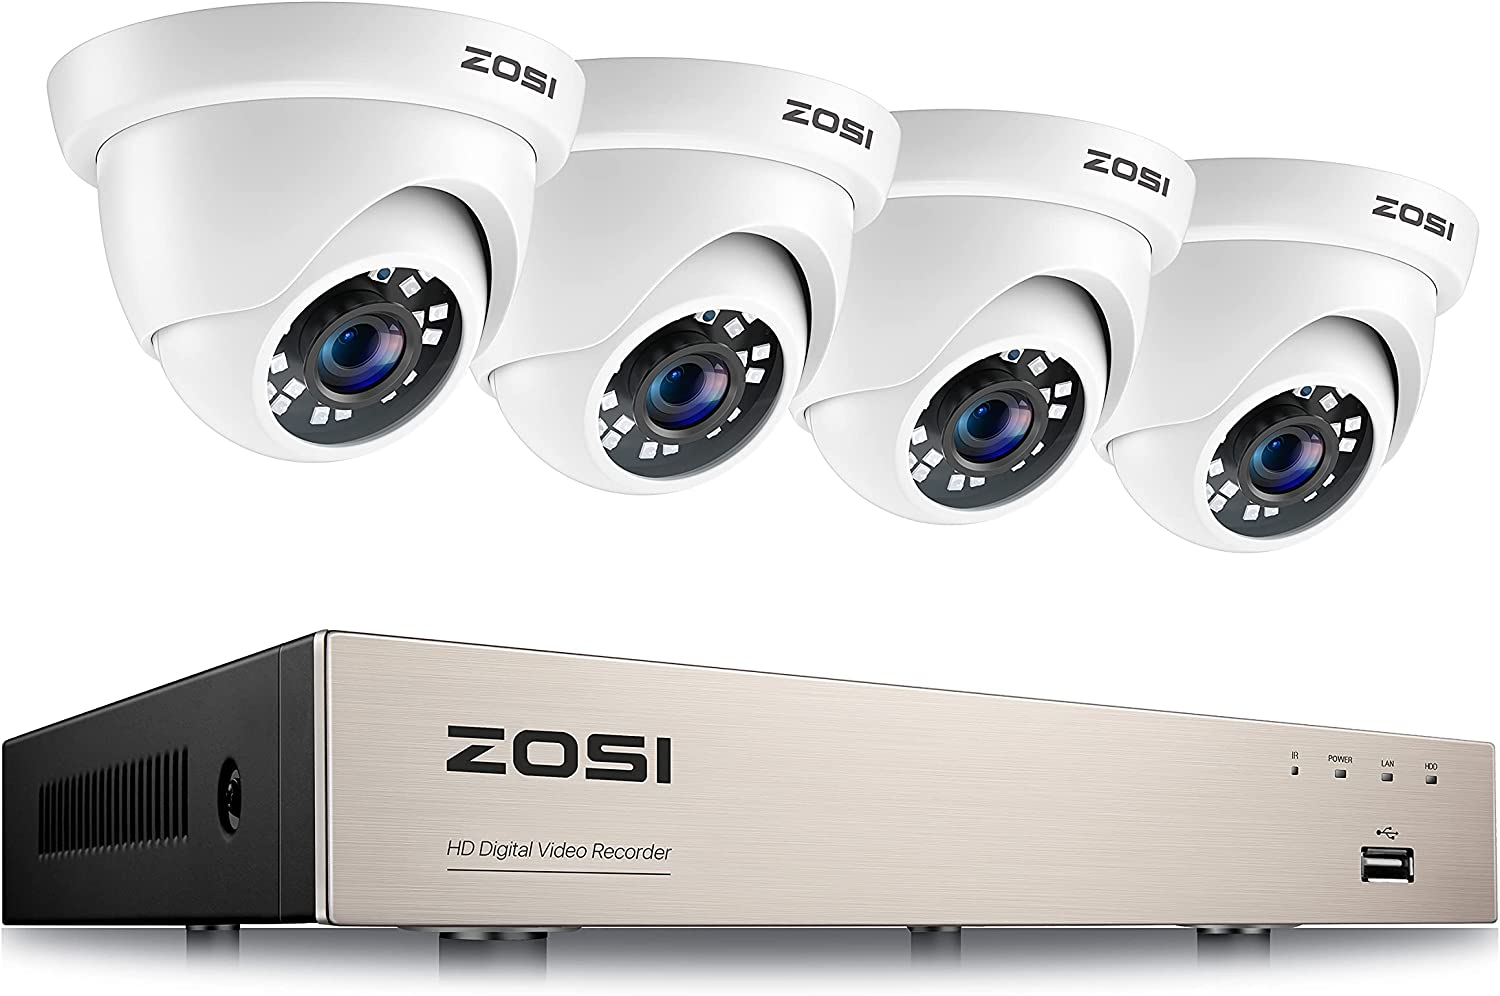 ZOSI 8CH 1080P H.265+ Home Security Camera System,5MP Lite 8 Channel CCTV DVR and 4pcs 1080P 1920TVL 2MP Outdoor Indoor Surveillance Dome Camera,80ft Night Vision,Motion Alerts,Remote Access(No HDD)